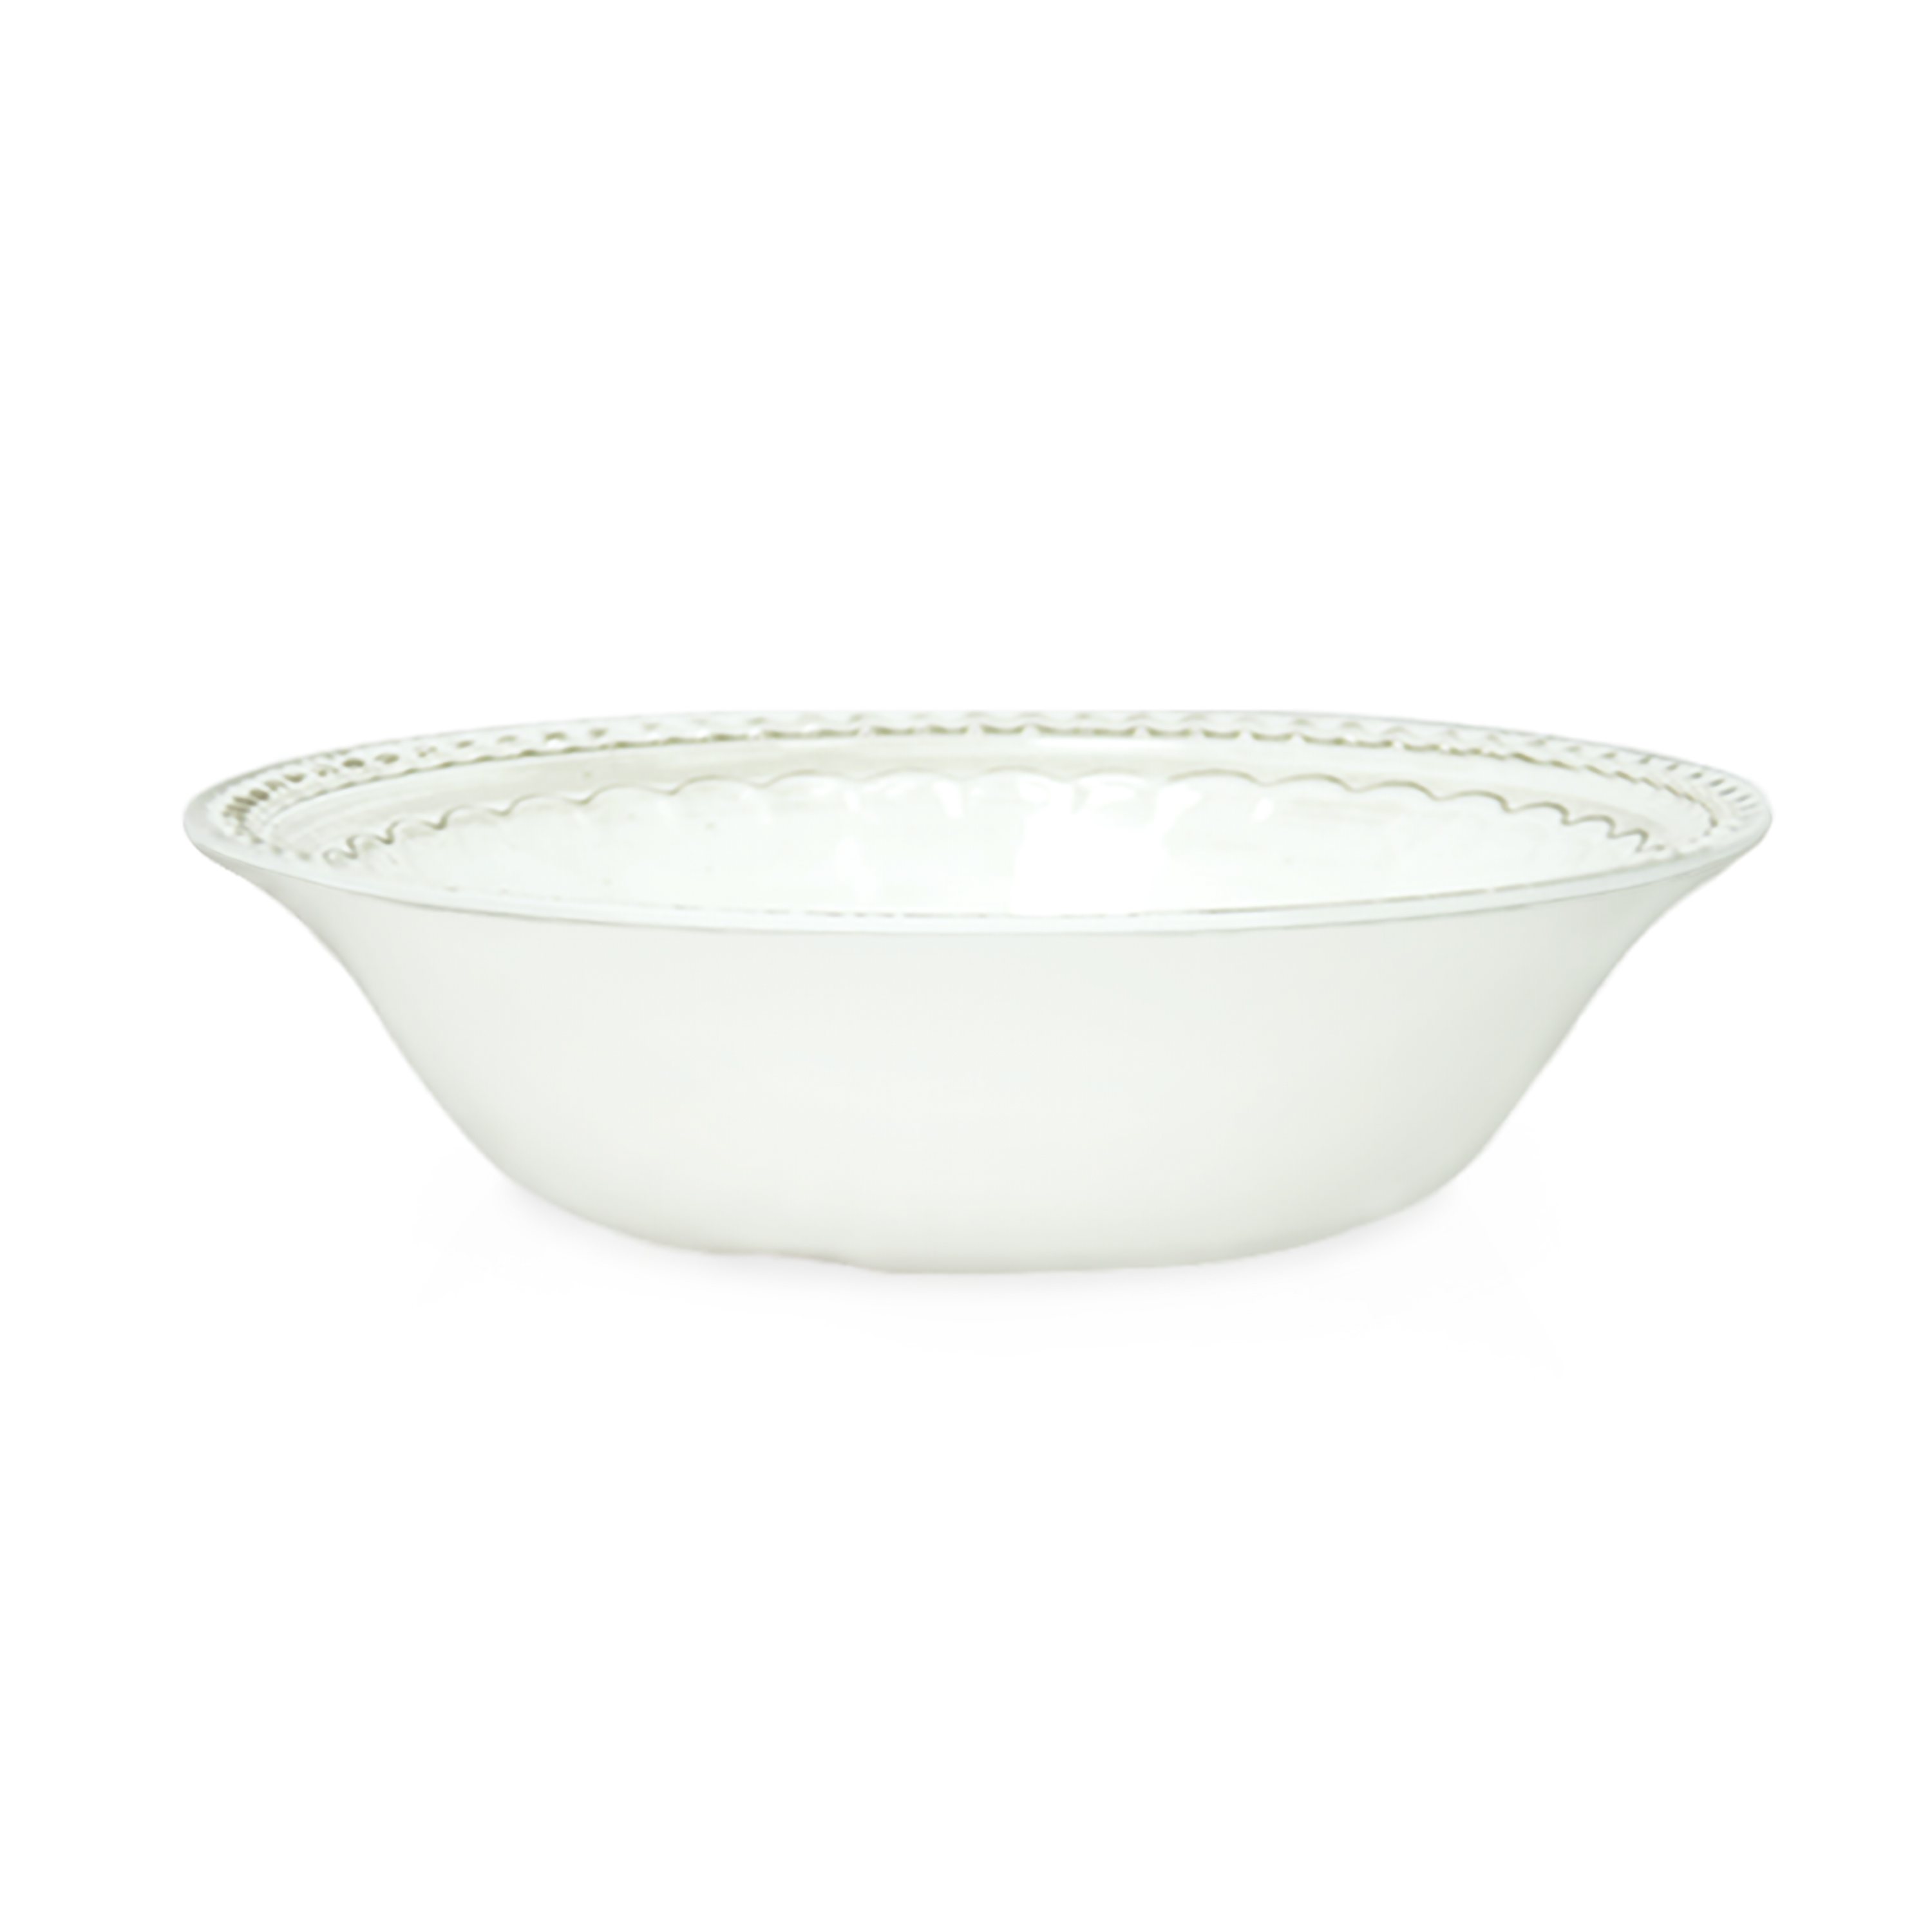 French Country Plate & Bowl Sets, White, 12-piece set slideshow image 5